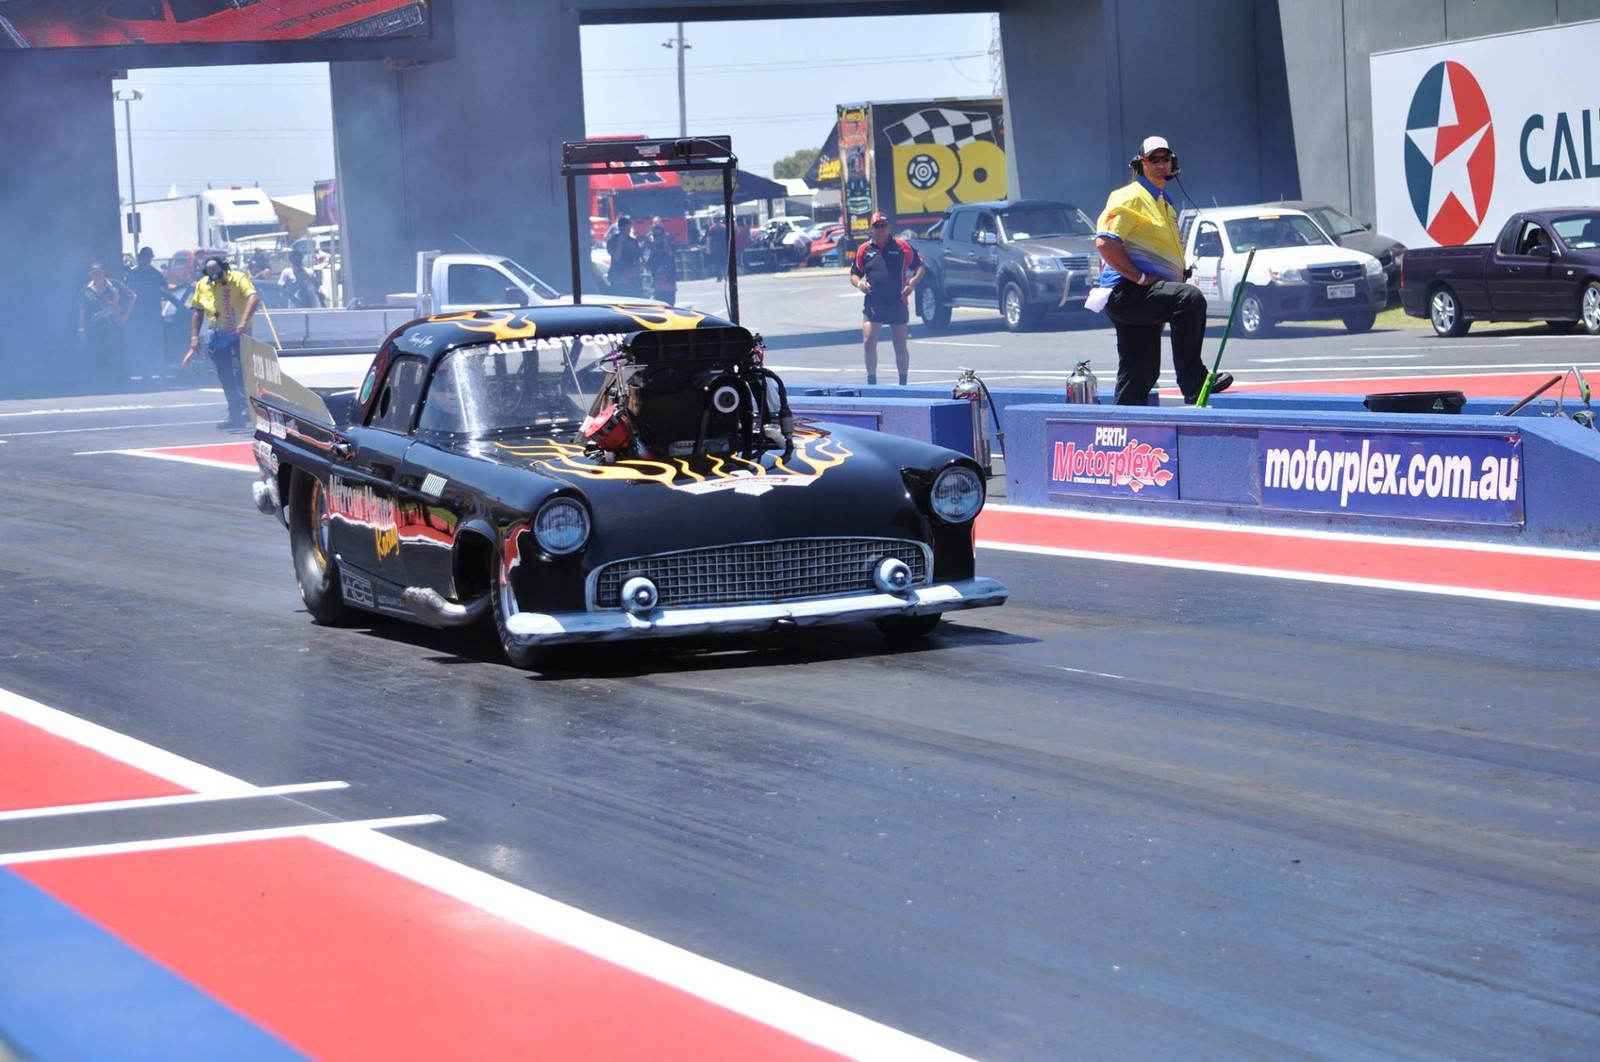 Ford Extended Warranty >> 1955 Ford Thunderbird Coupe 1/4 mile trap speeds 0-60 - DragTimes.com